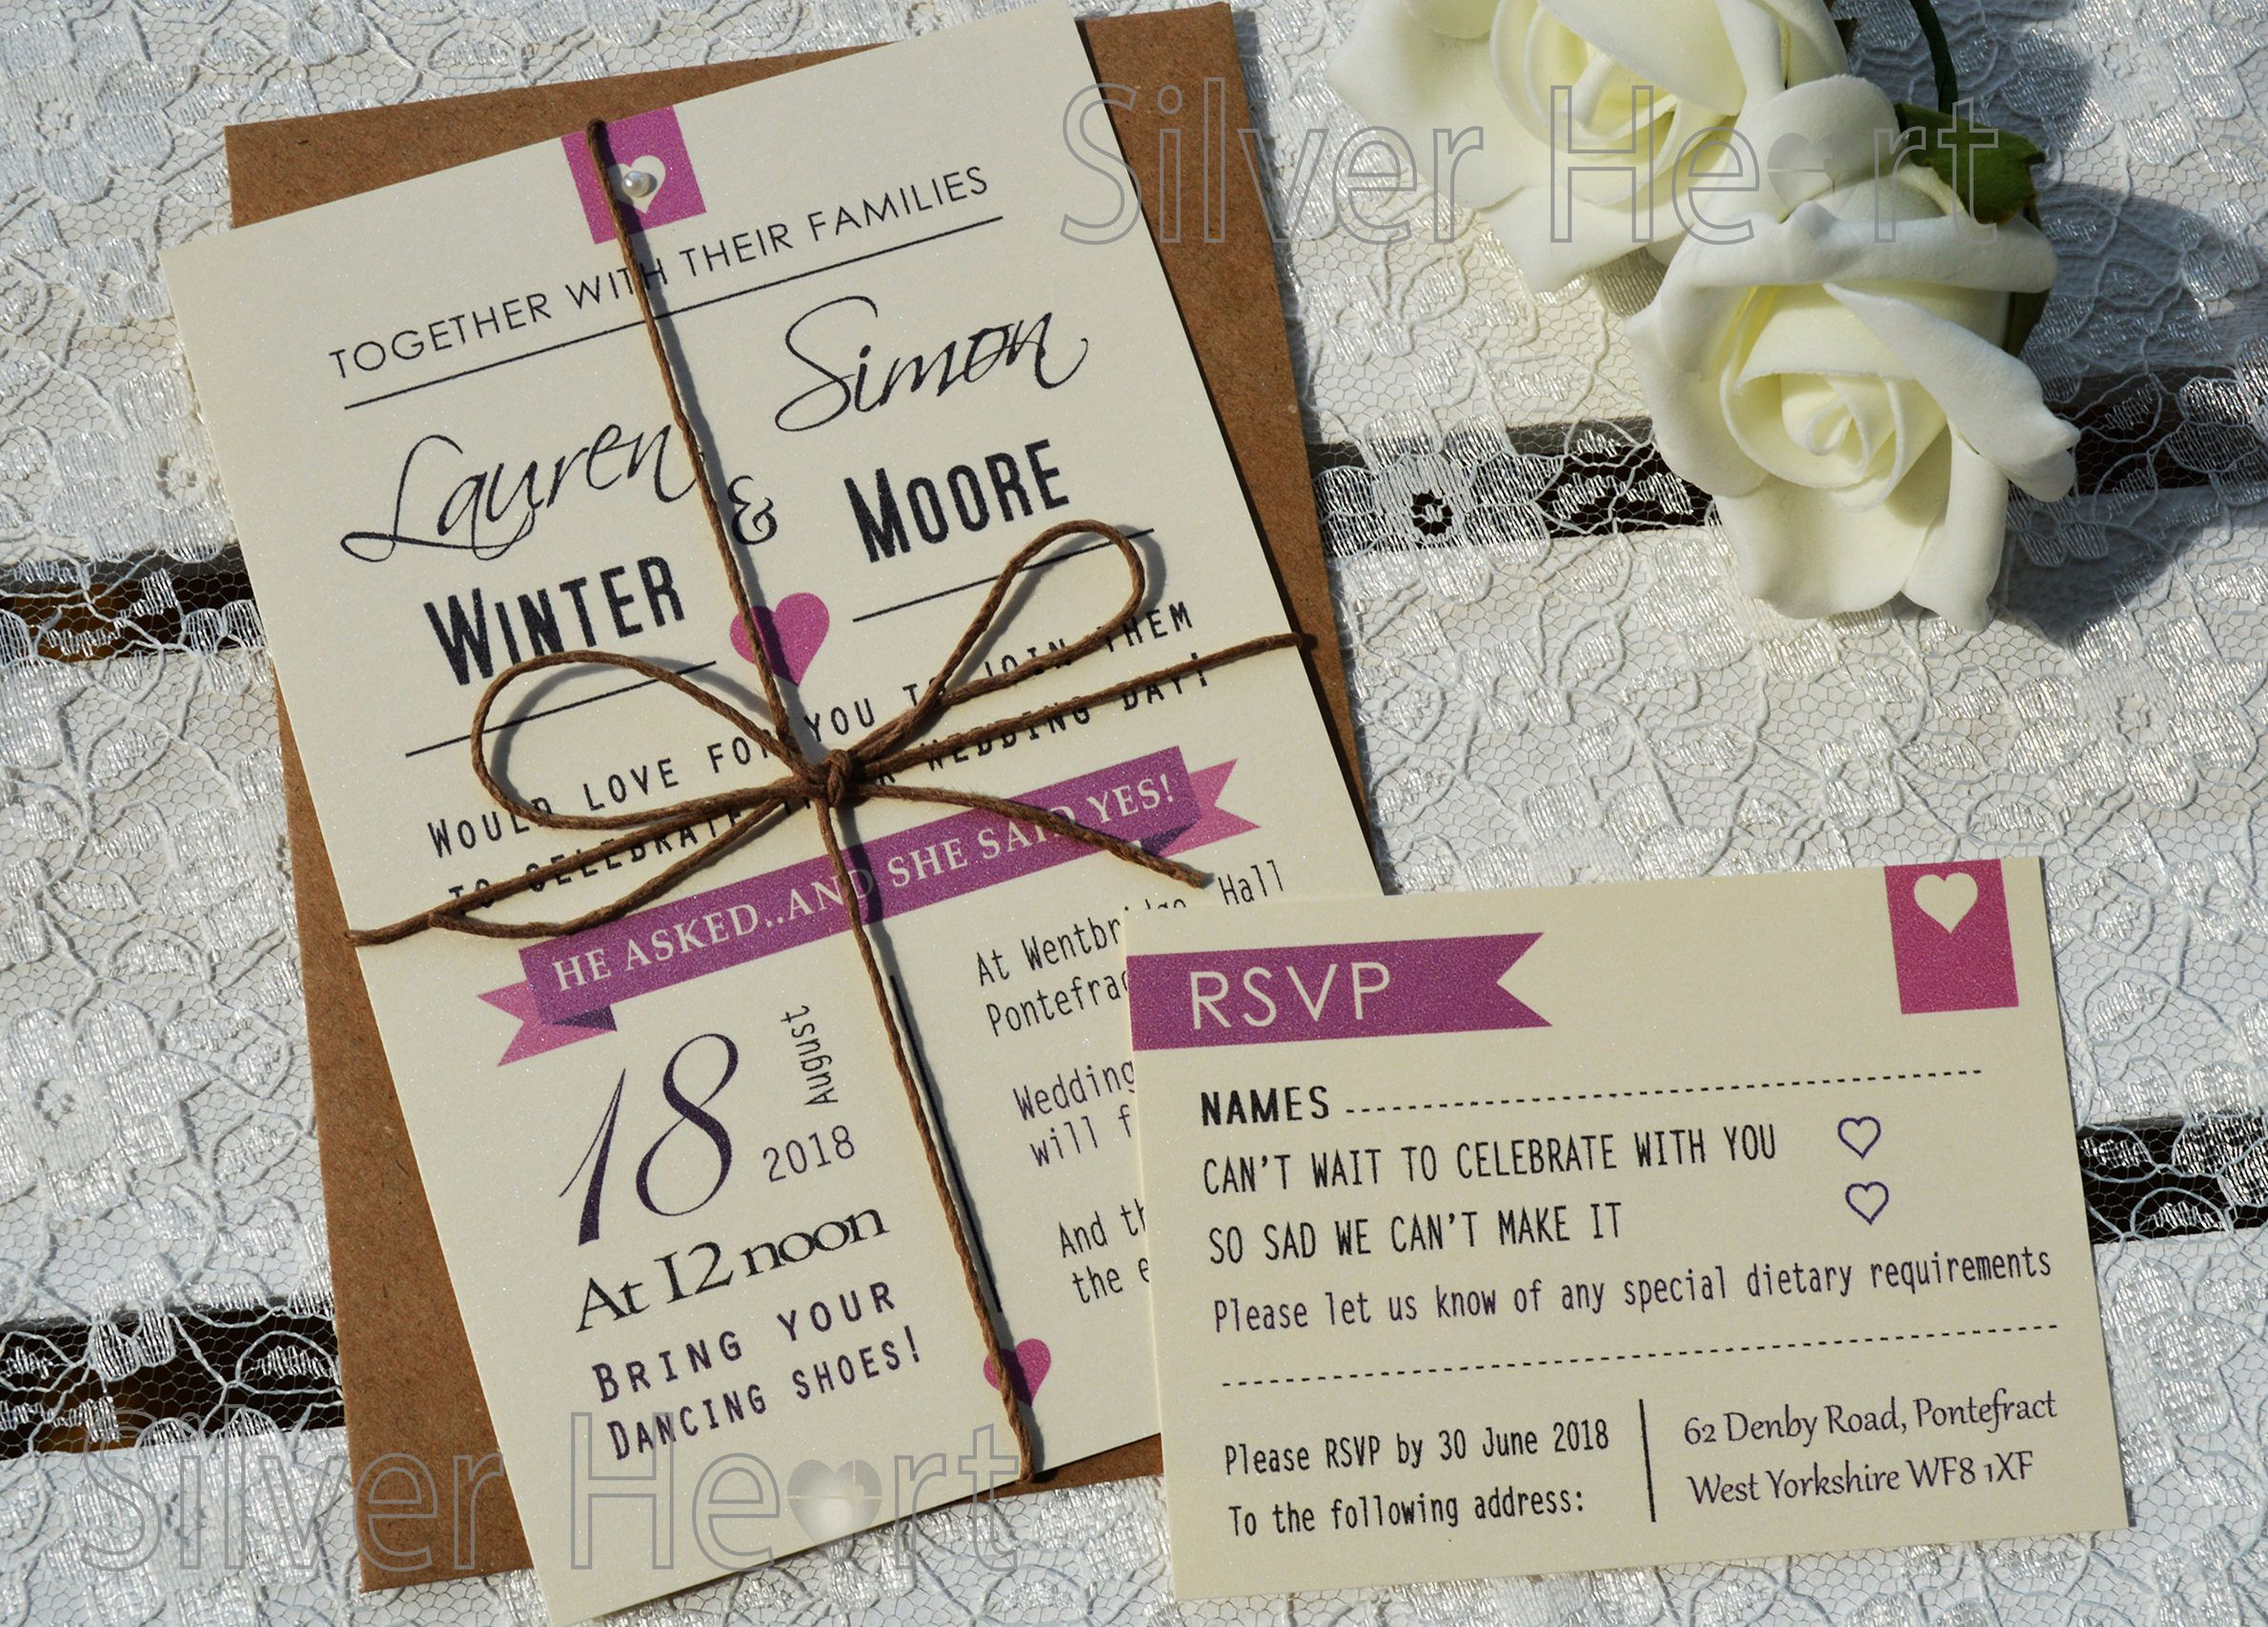 I Do Wedding Invitation - SAMPLE ONLY | Vintage wedding ...